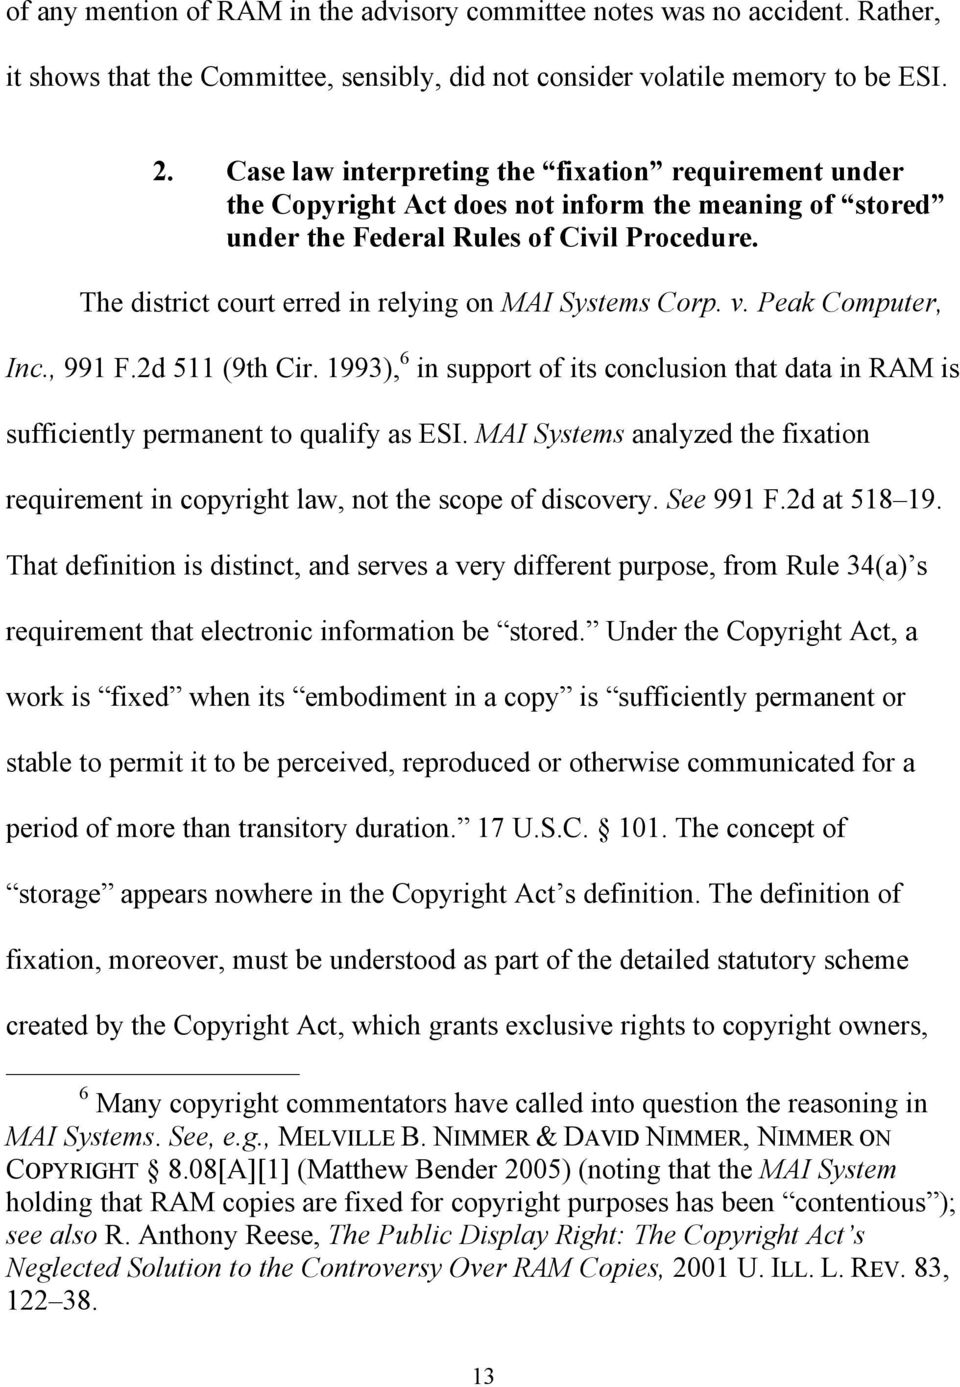 The district court erred in relying on MAI Systems Corp. v. Peak Computer, Inc., 991 F.2d 511 (9th Cir.